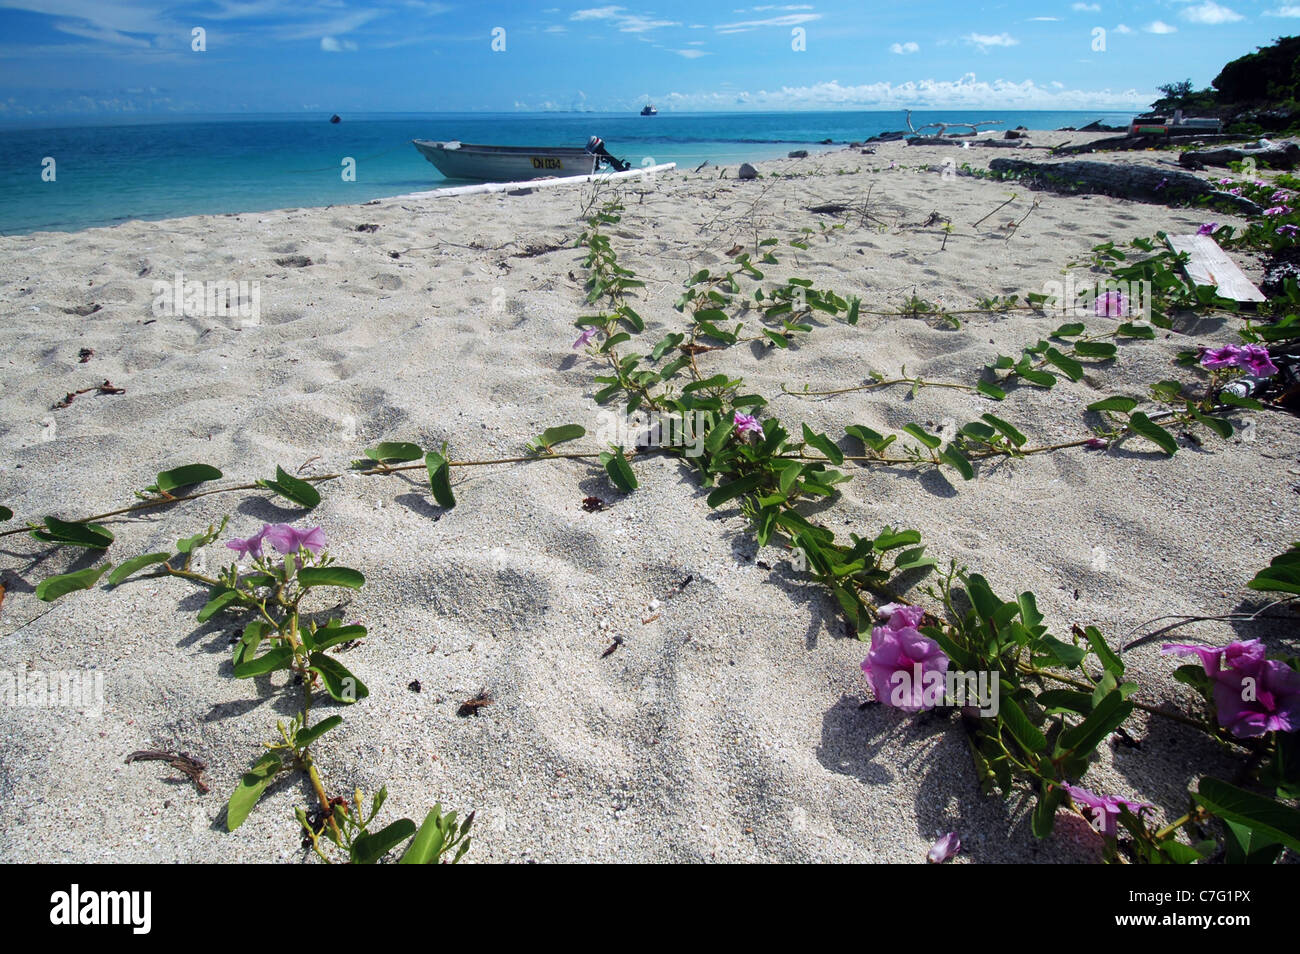 Coconut Island Queensland: Beach Morning Glory (Ipomoea Pes-caprae) Flowering At